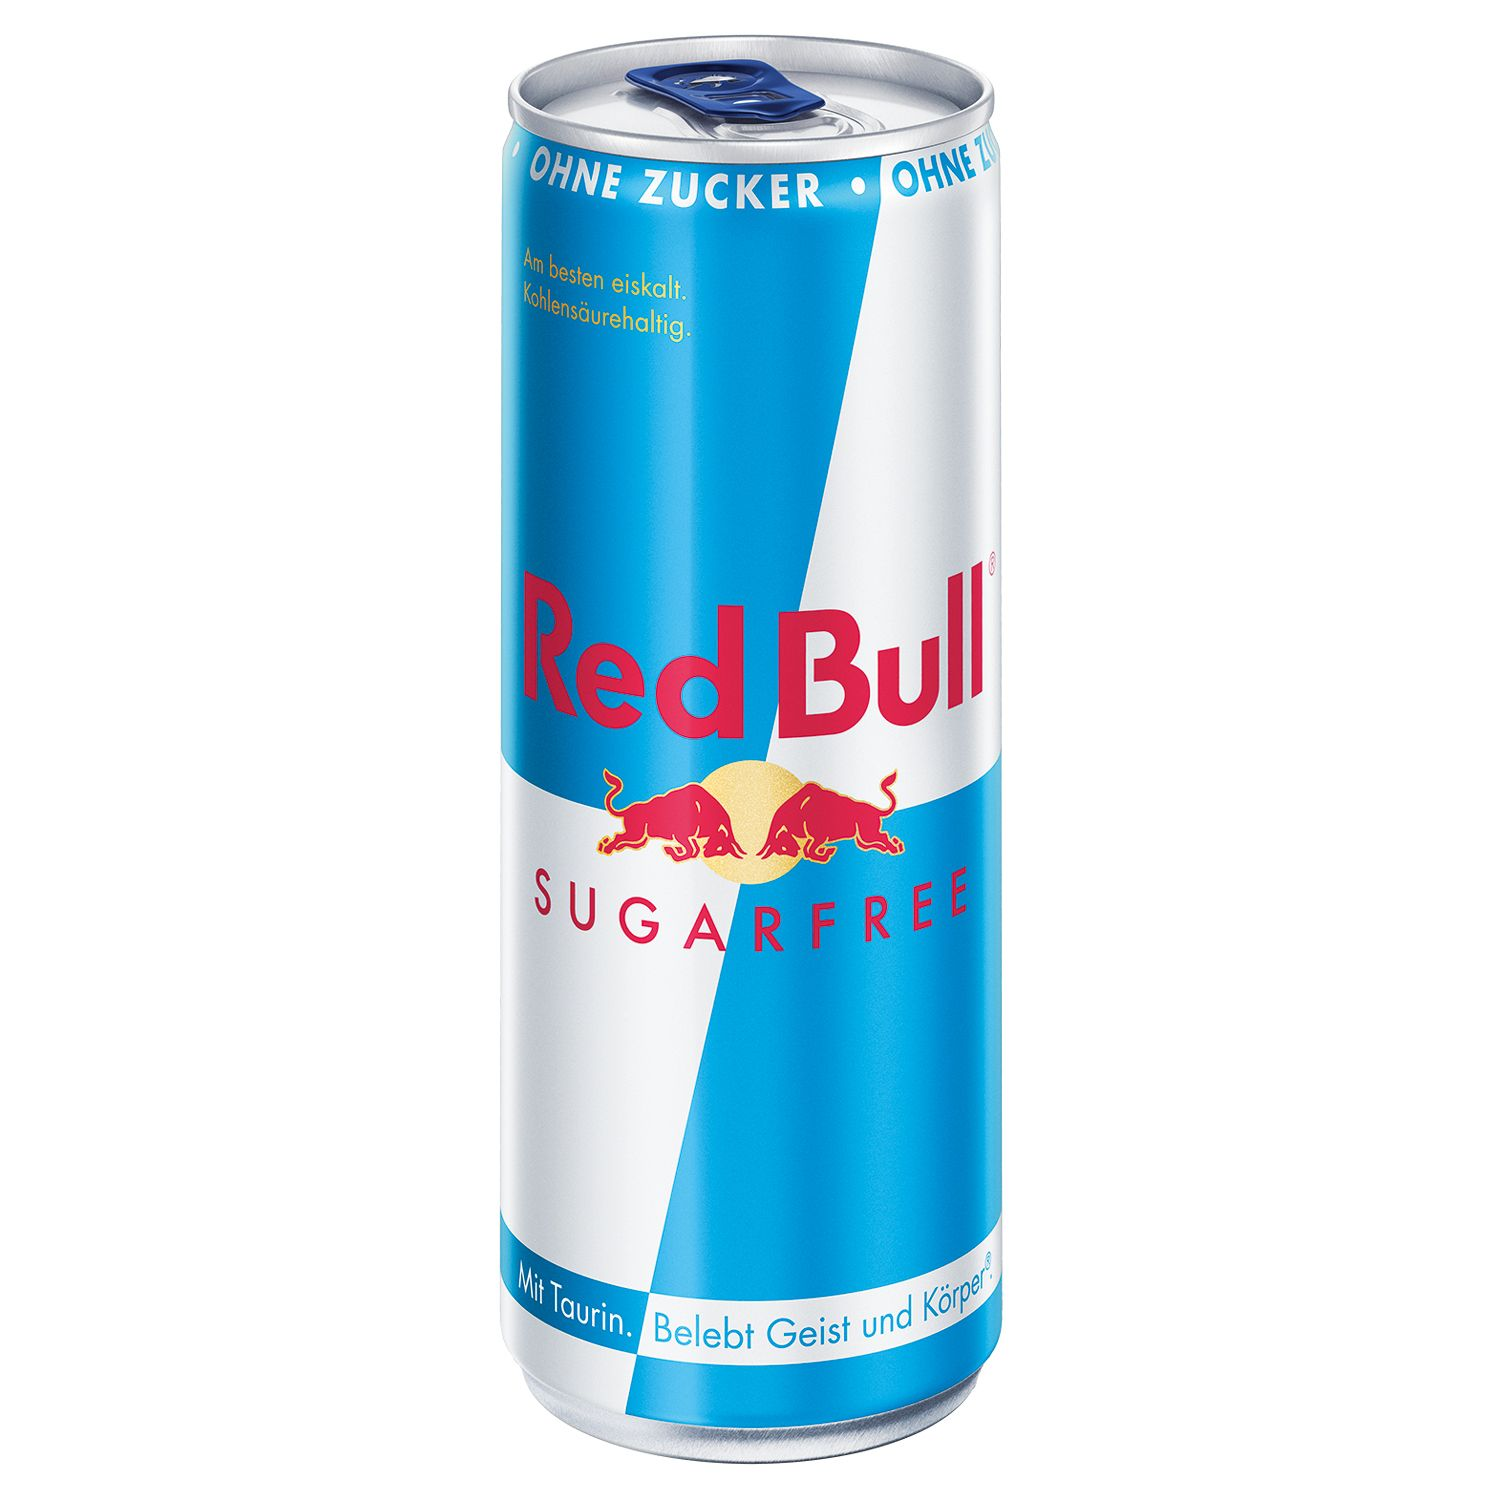 Red Bull Sugarfree 330 ml